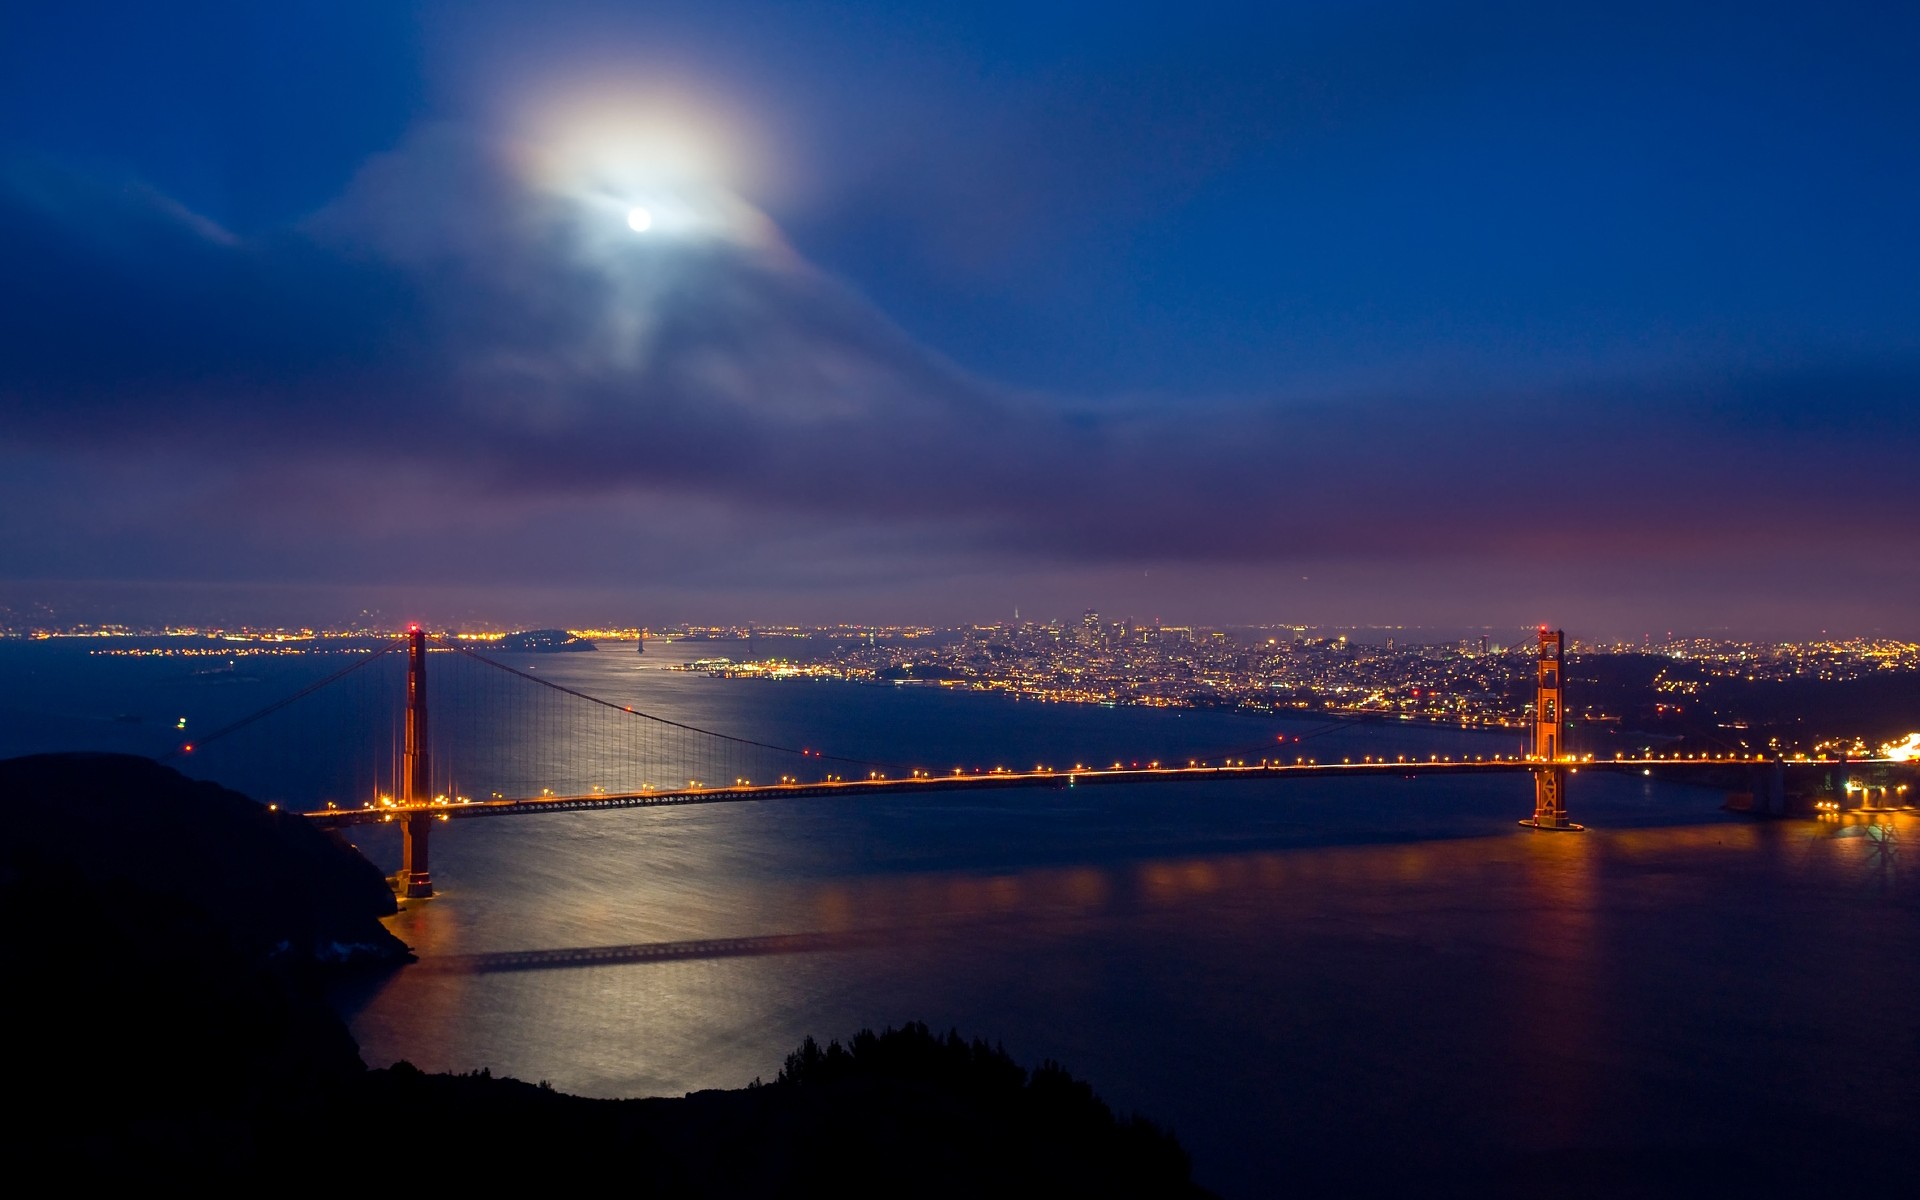 Golden gate san francisco world architecture bridges cities golden gate san francisco world architecture bridges cities skyline cityscape night lights bay water vehicles traffic sky clouds moon wallpaper 1920x1200 gumiabroncs Image collections